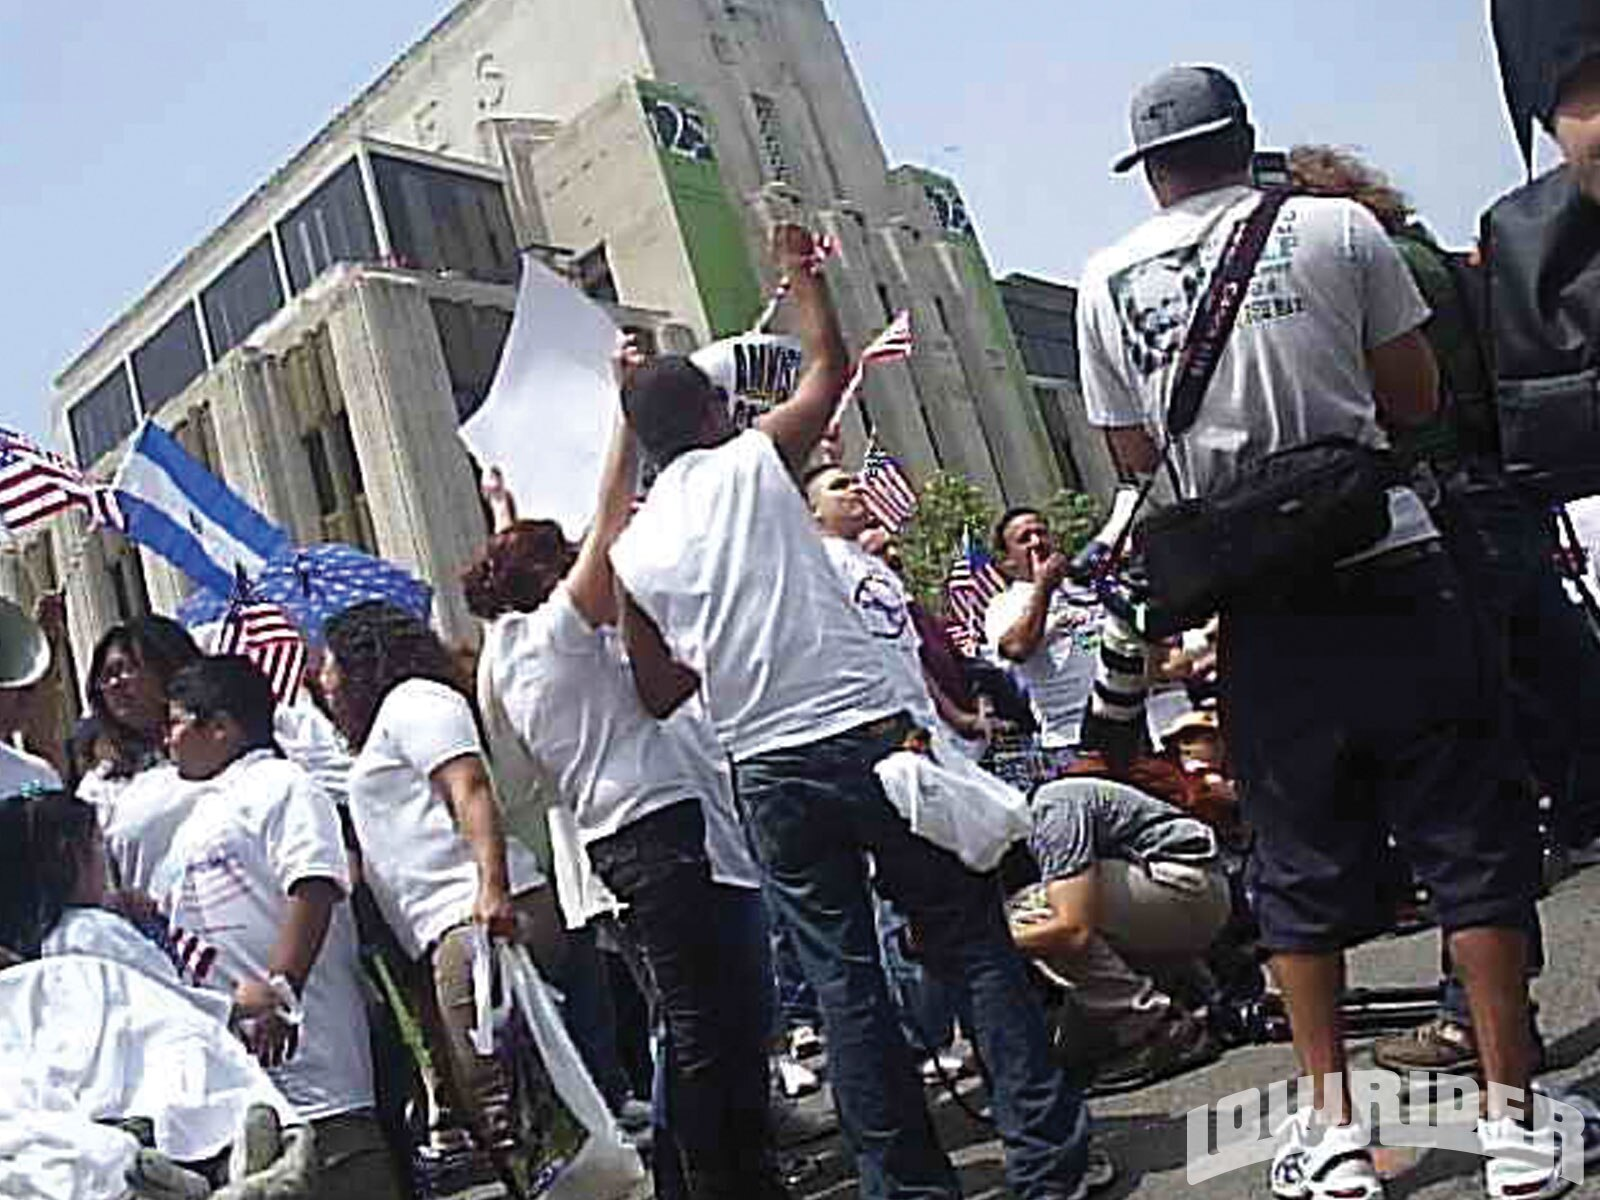 1009_lrmp_05_z-raza_report_hispanic_heritage_pride_alive_and_well-protestors2